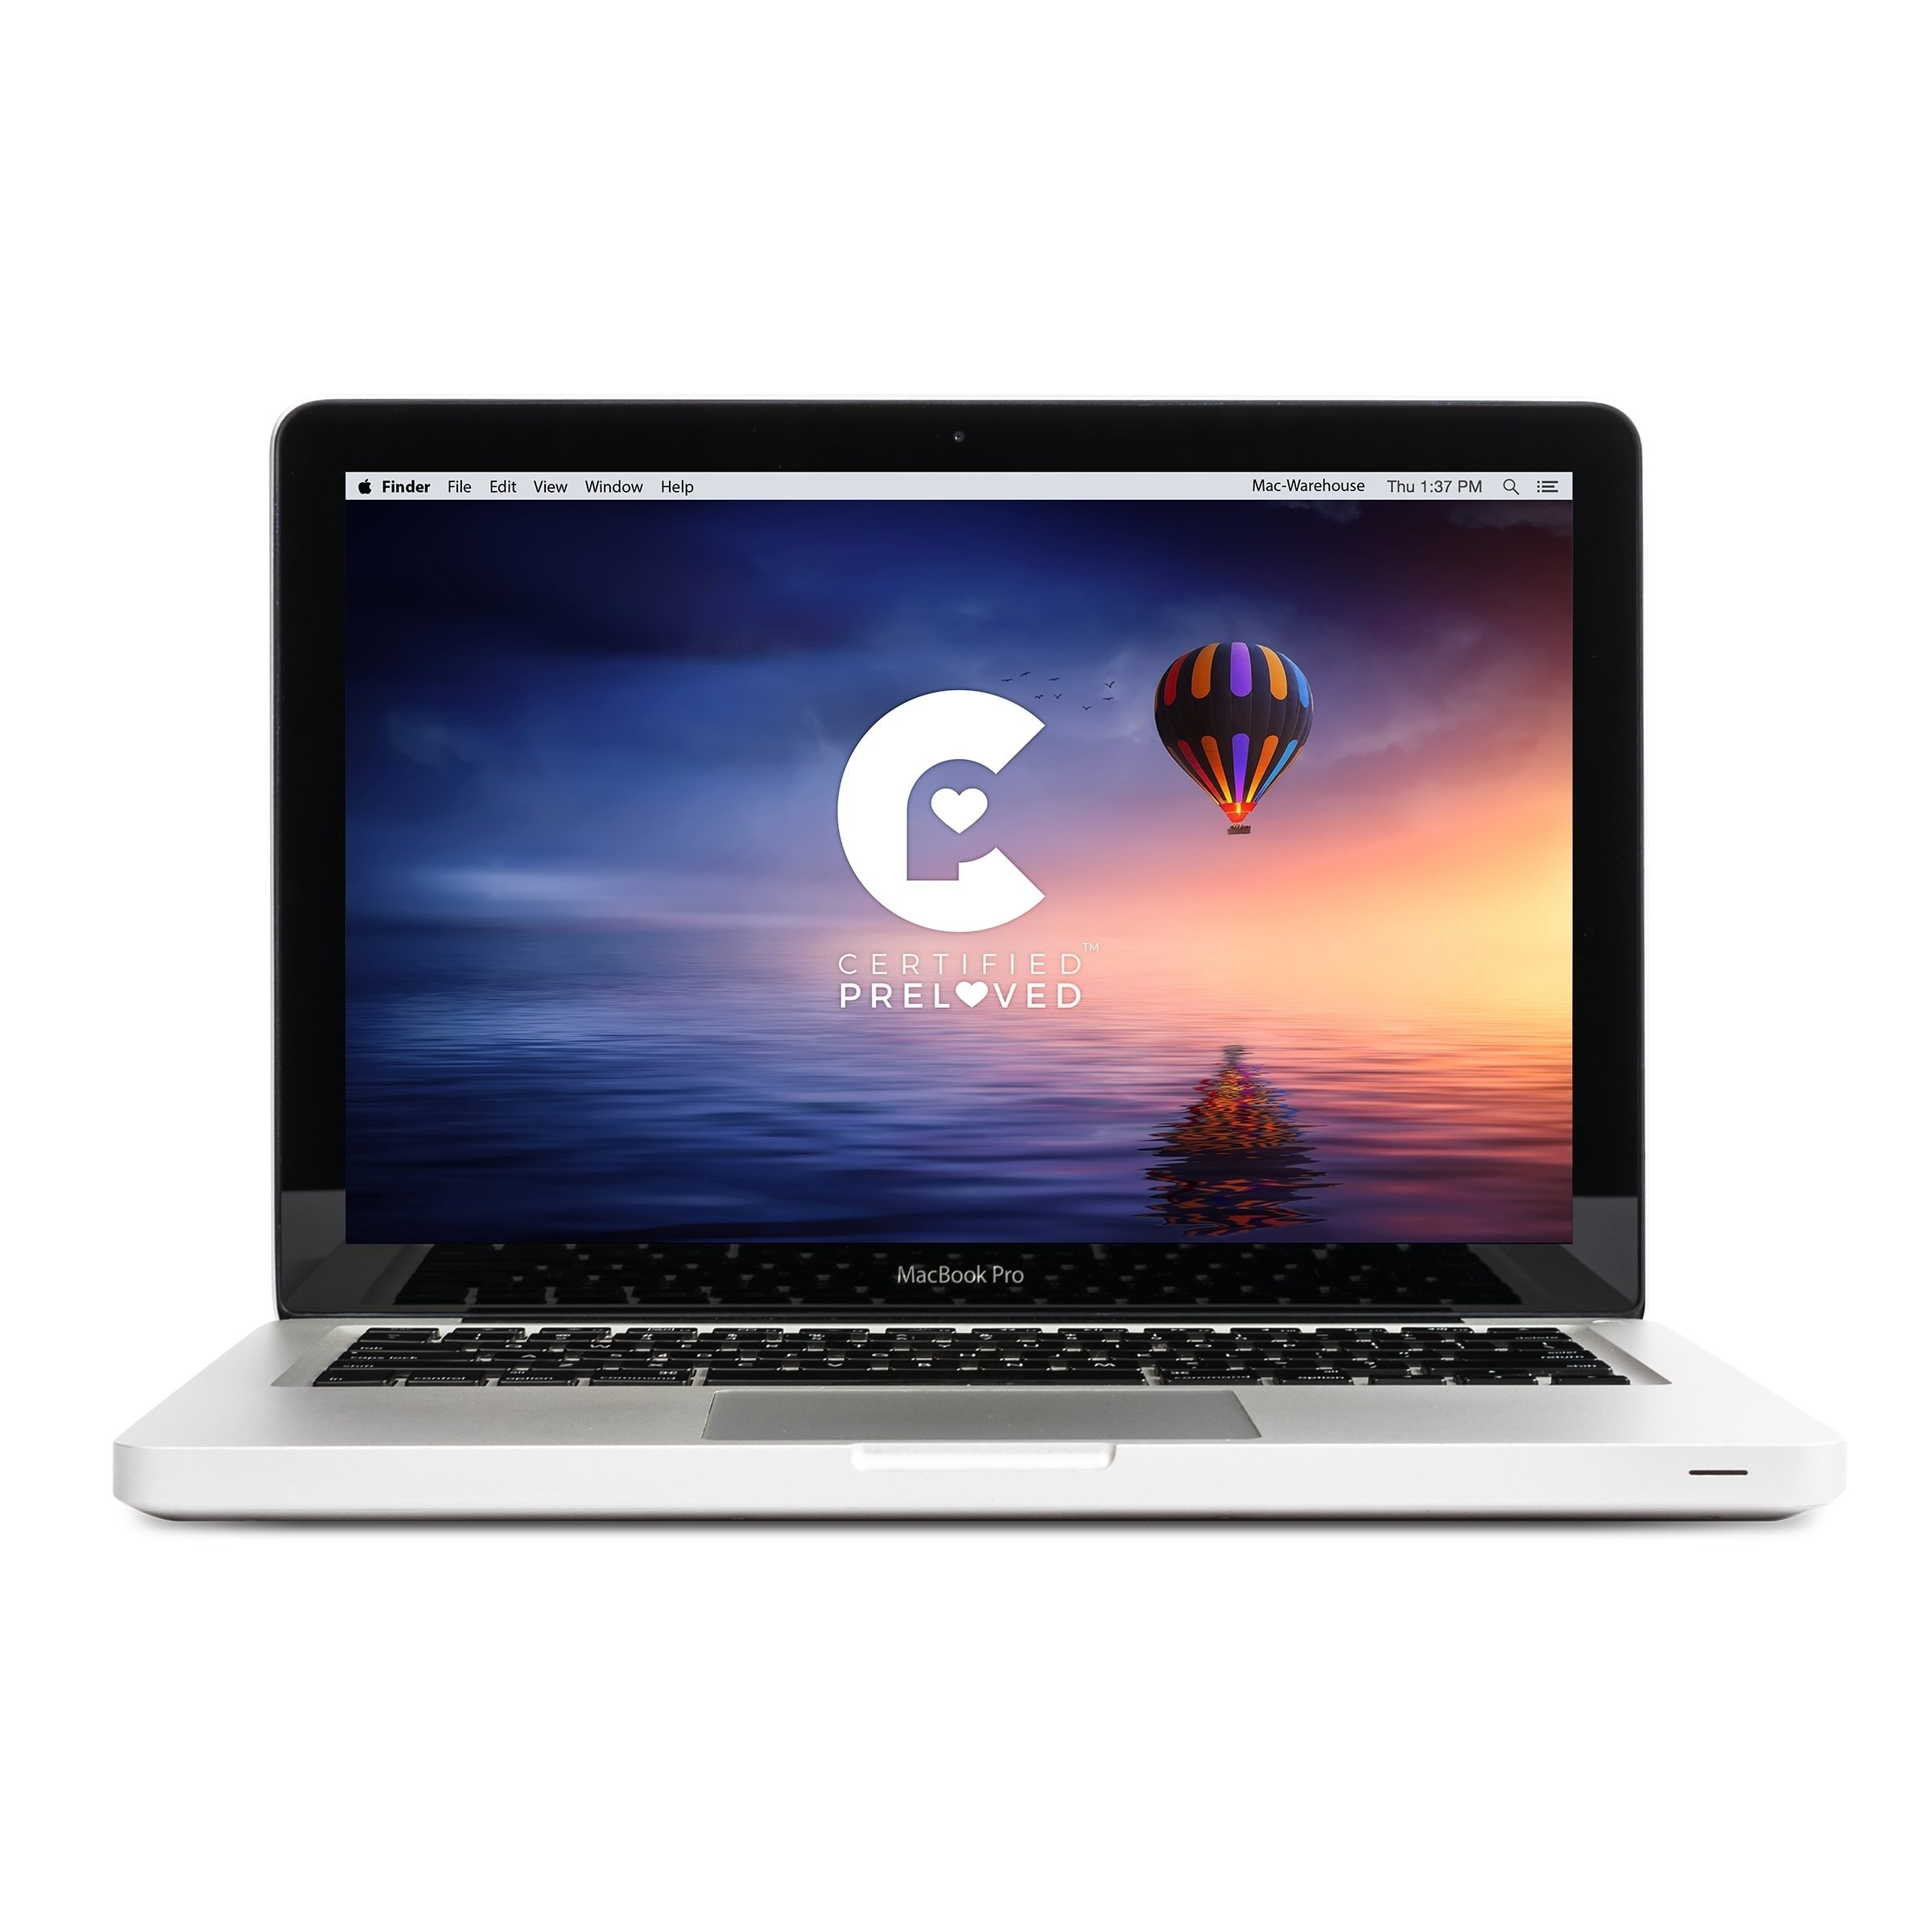 Apple MD102LL/A 13.3 inch Macbook Pro DCi7 2.9 GHz - Refurbished by Overstock 750GB HDD - 4 GB